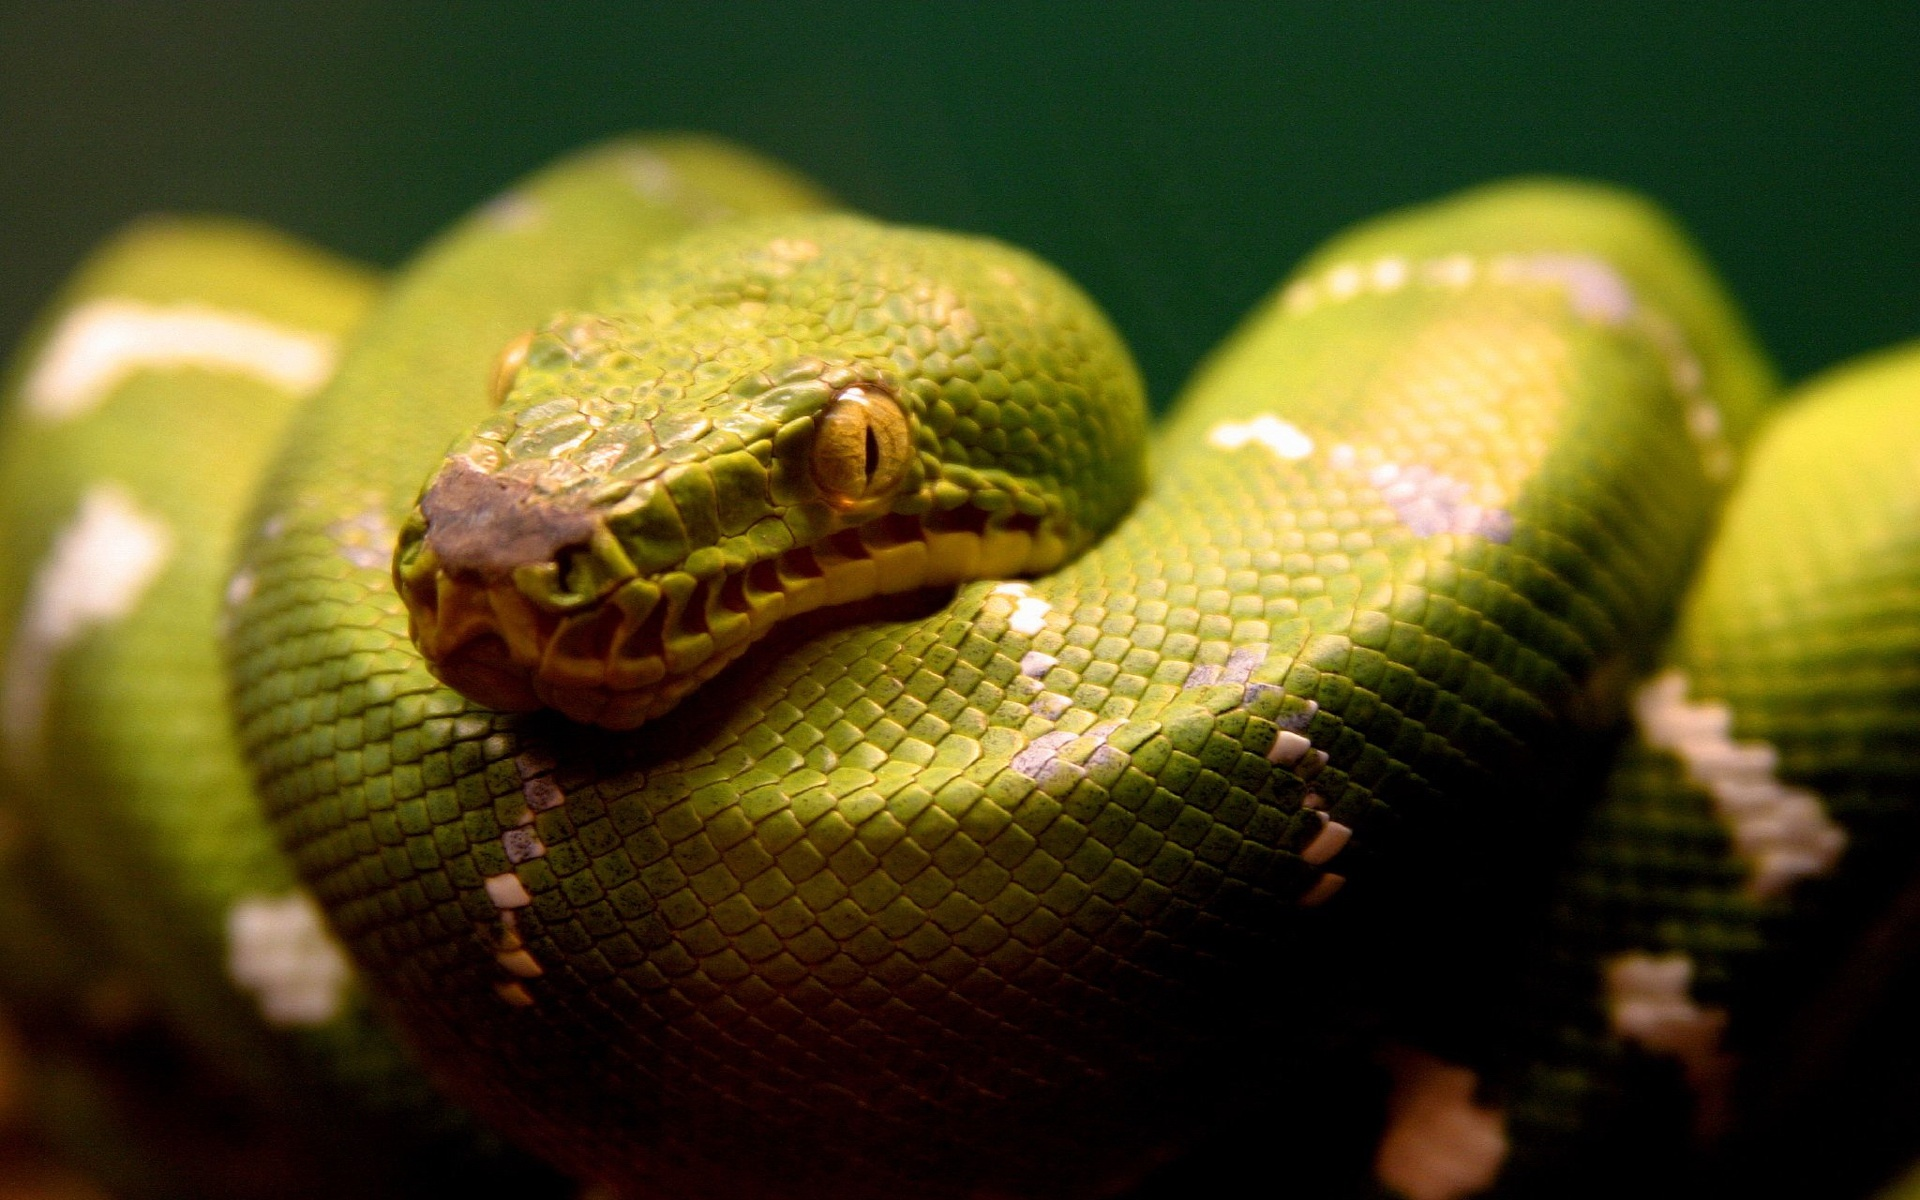 HD Wallpapers A Green Snake